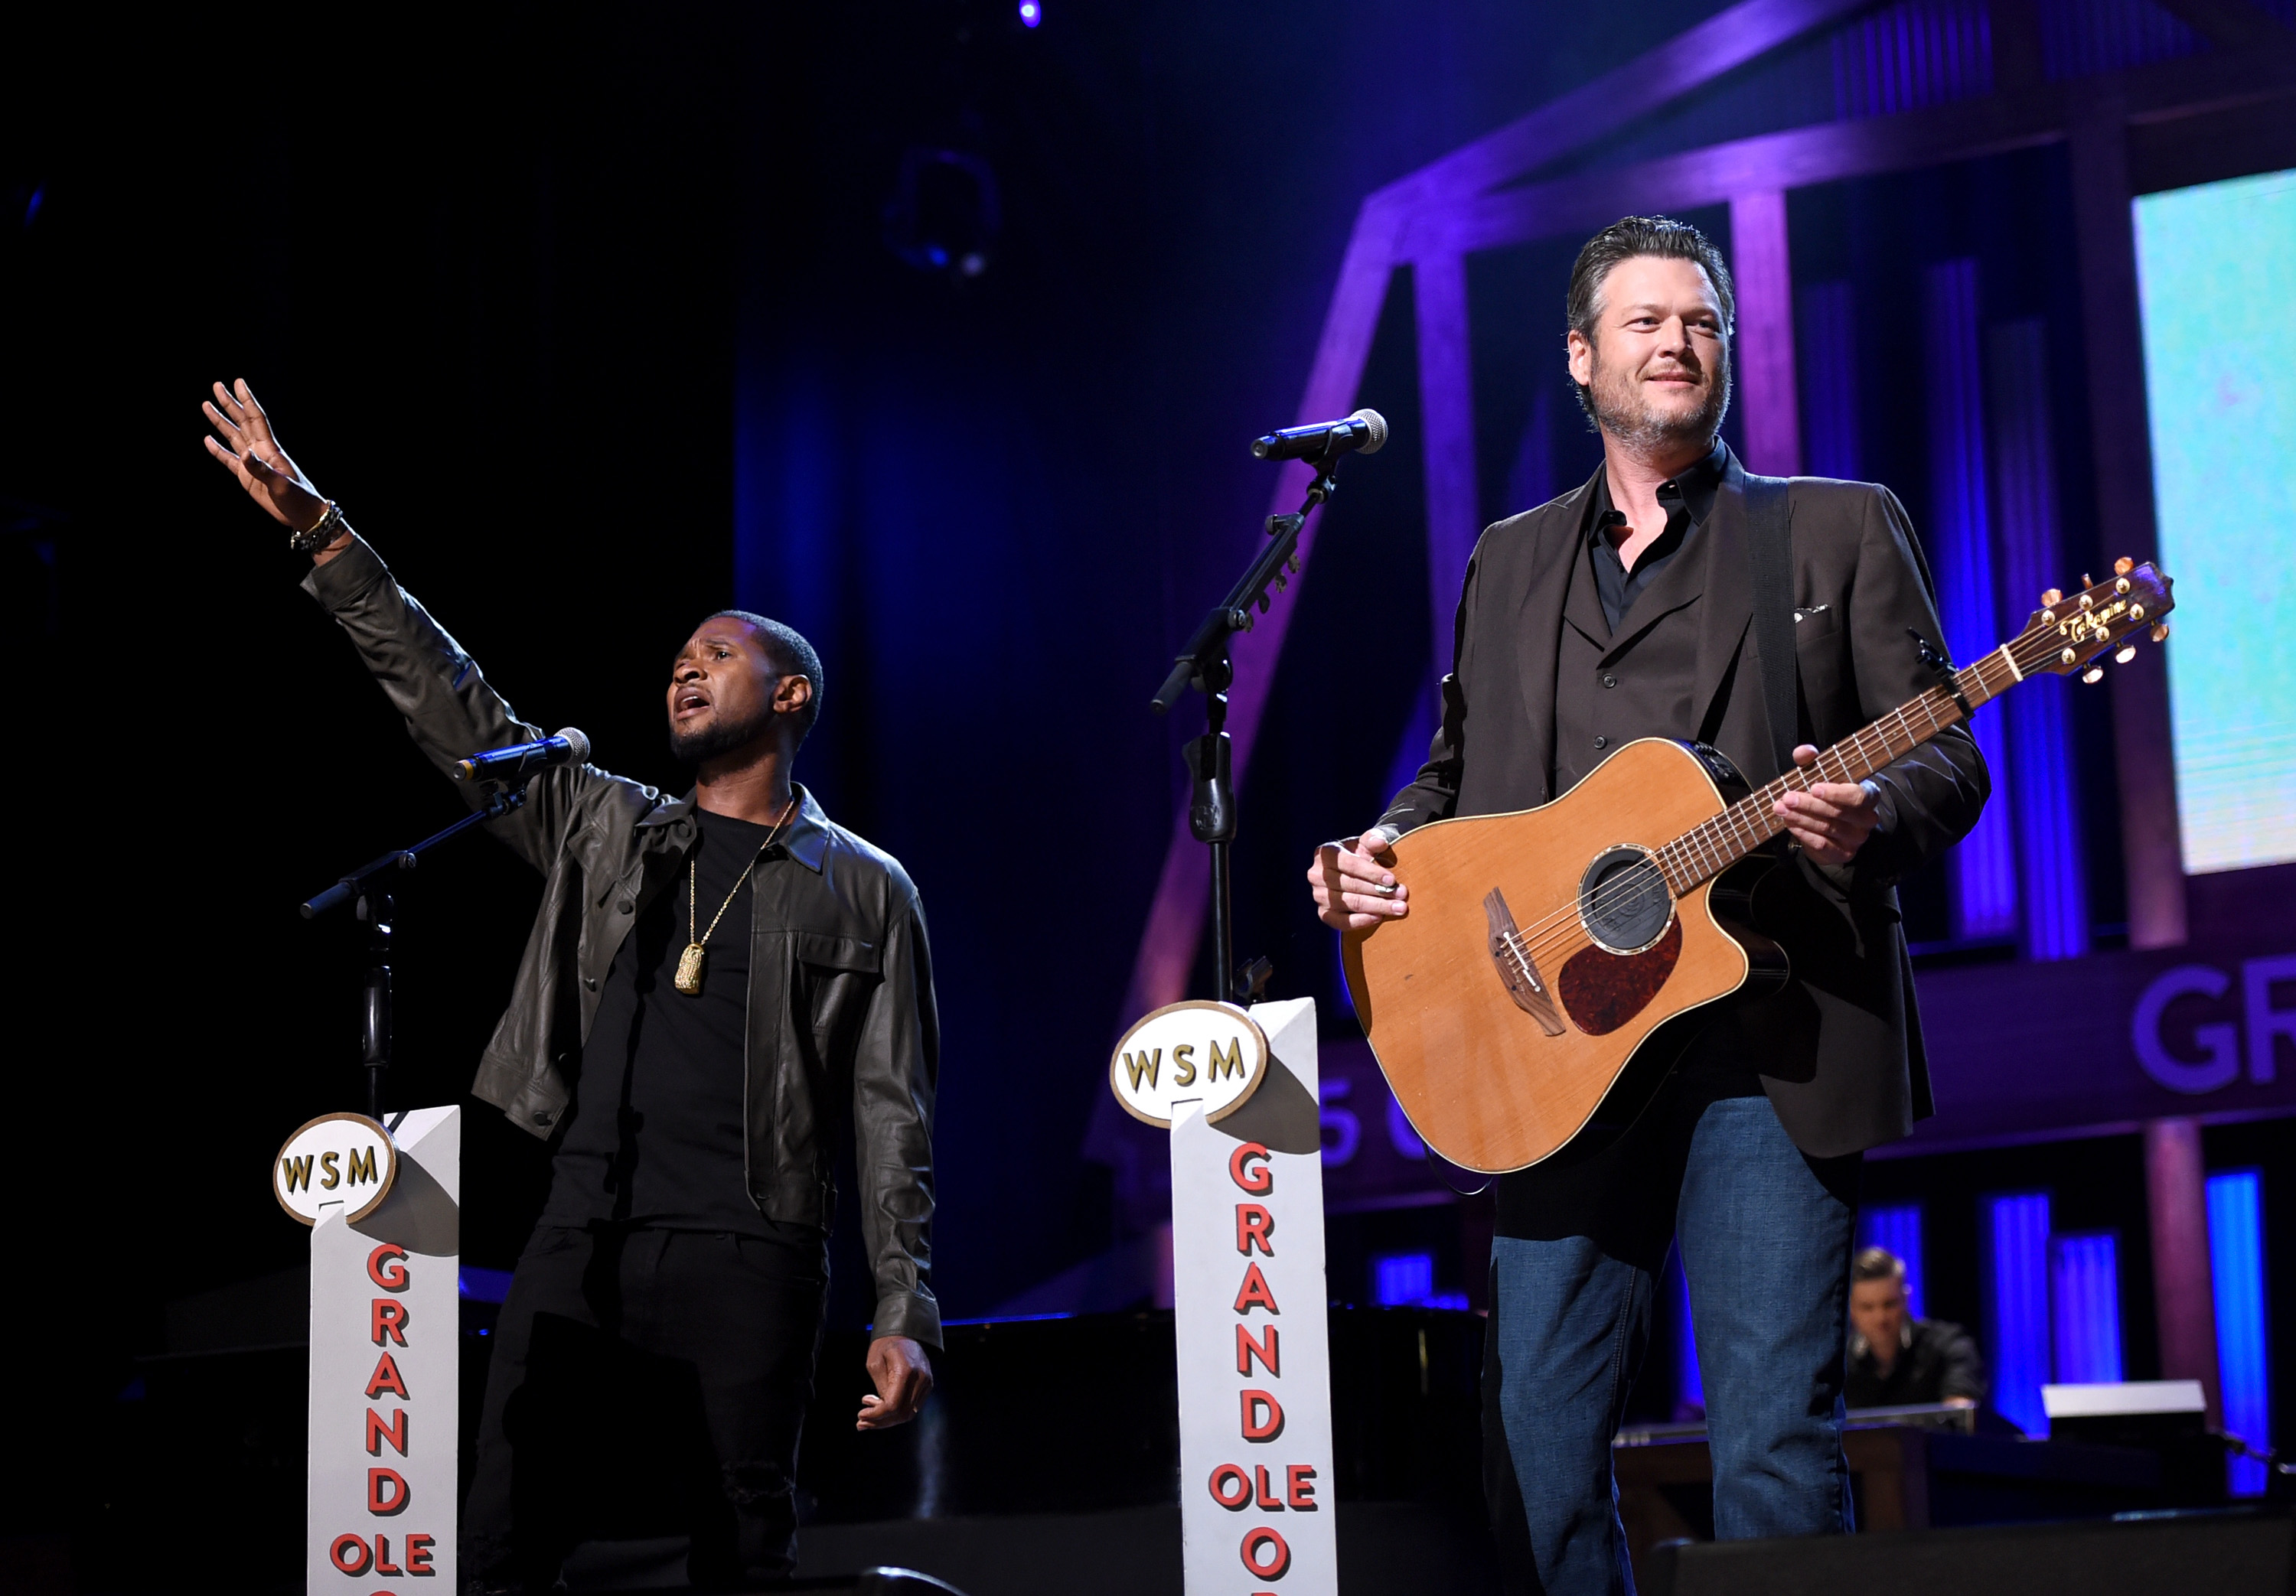 "<div class=""meta image-caption""><div class=""origin-logo origin-image none""><span>none</span></div><span class=""caption-text"">Usher and Blake Shelton perform onstage during Hand in Hand: A Benefit for Hurricane Relief at the Grand Ole Opry House on September 12, 2017 in Nashville, Tennessee. (John Shearer/Hand in Hand/Getty Images)</span></div>"